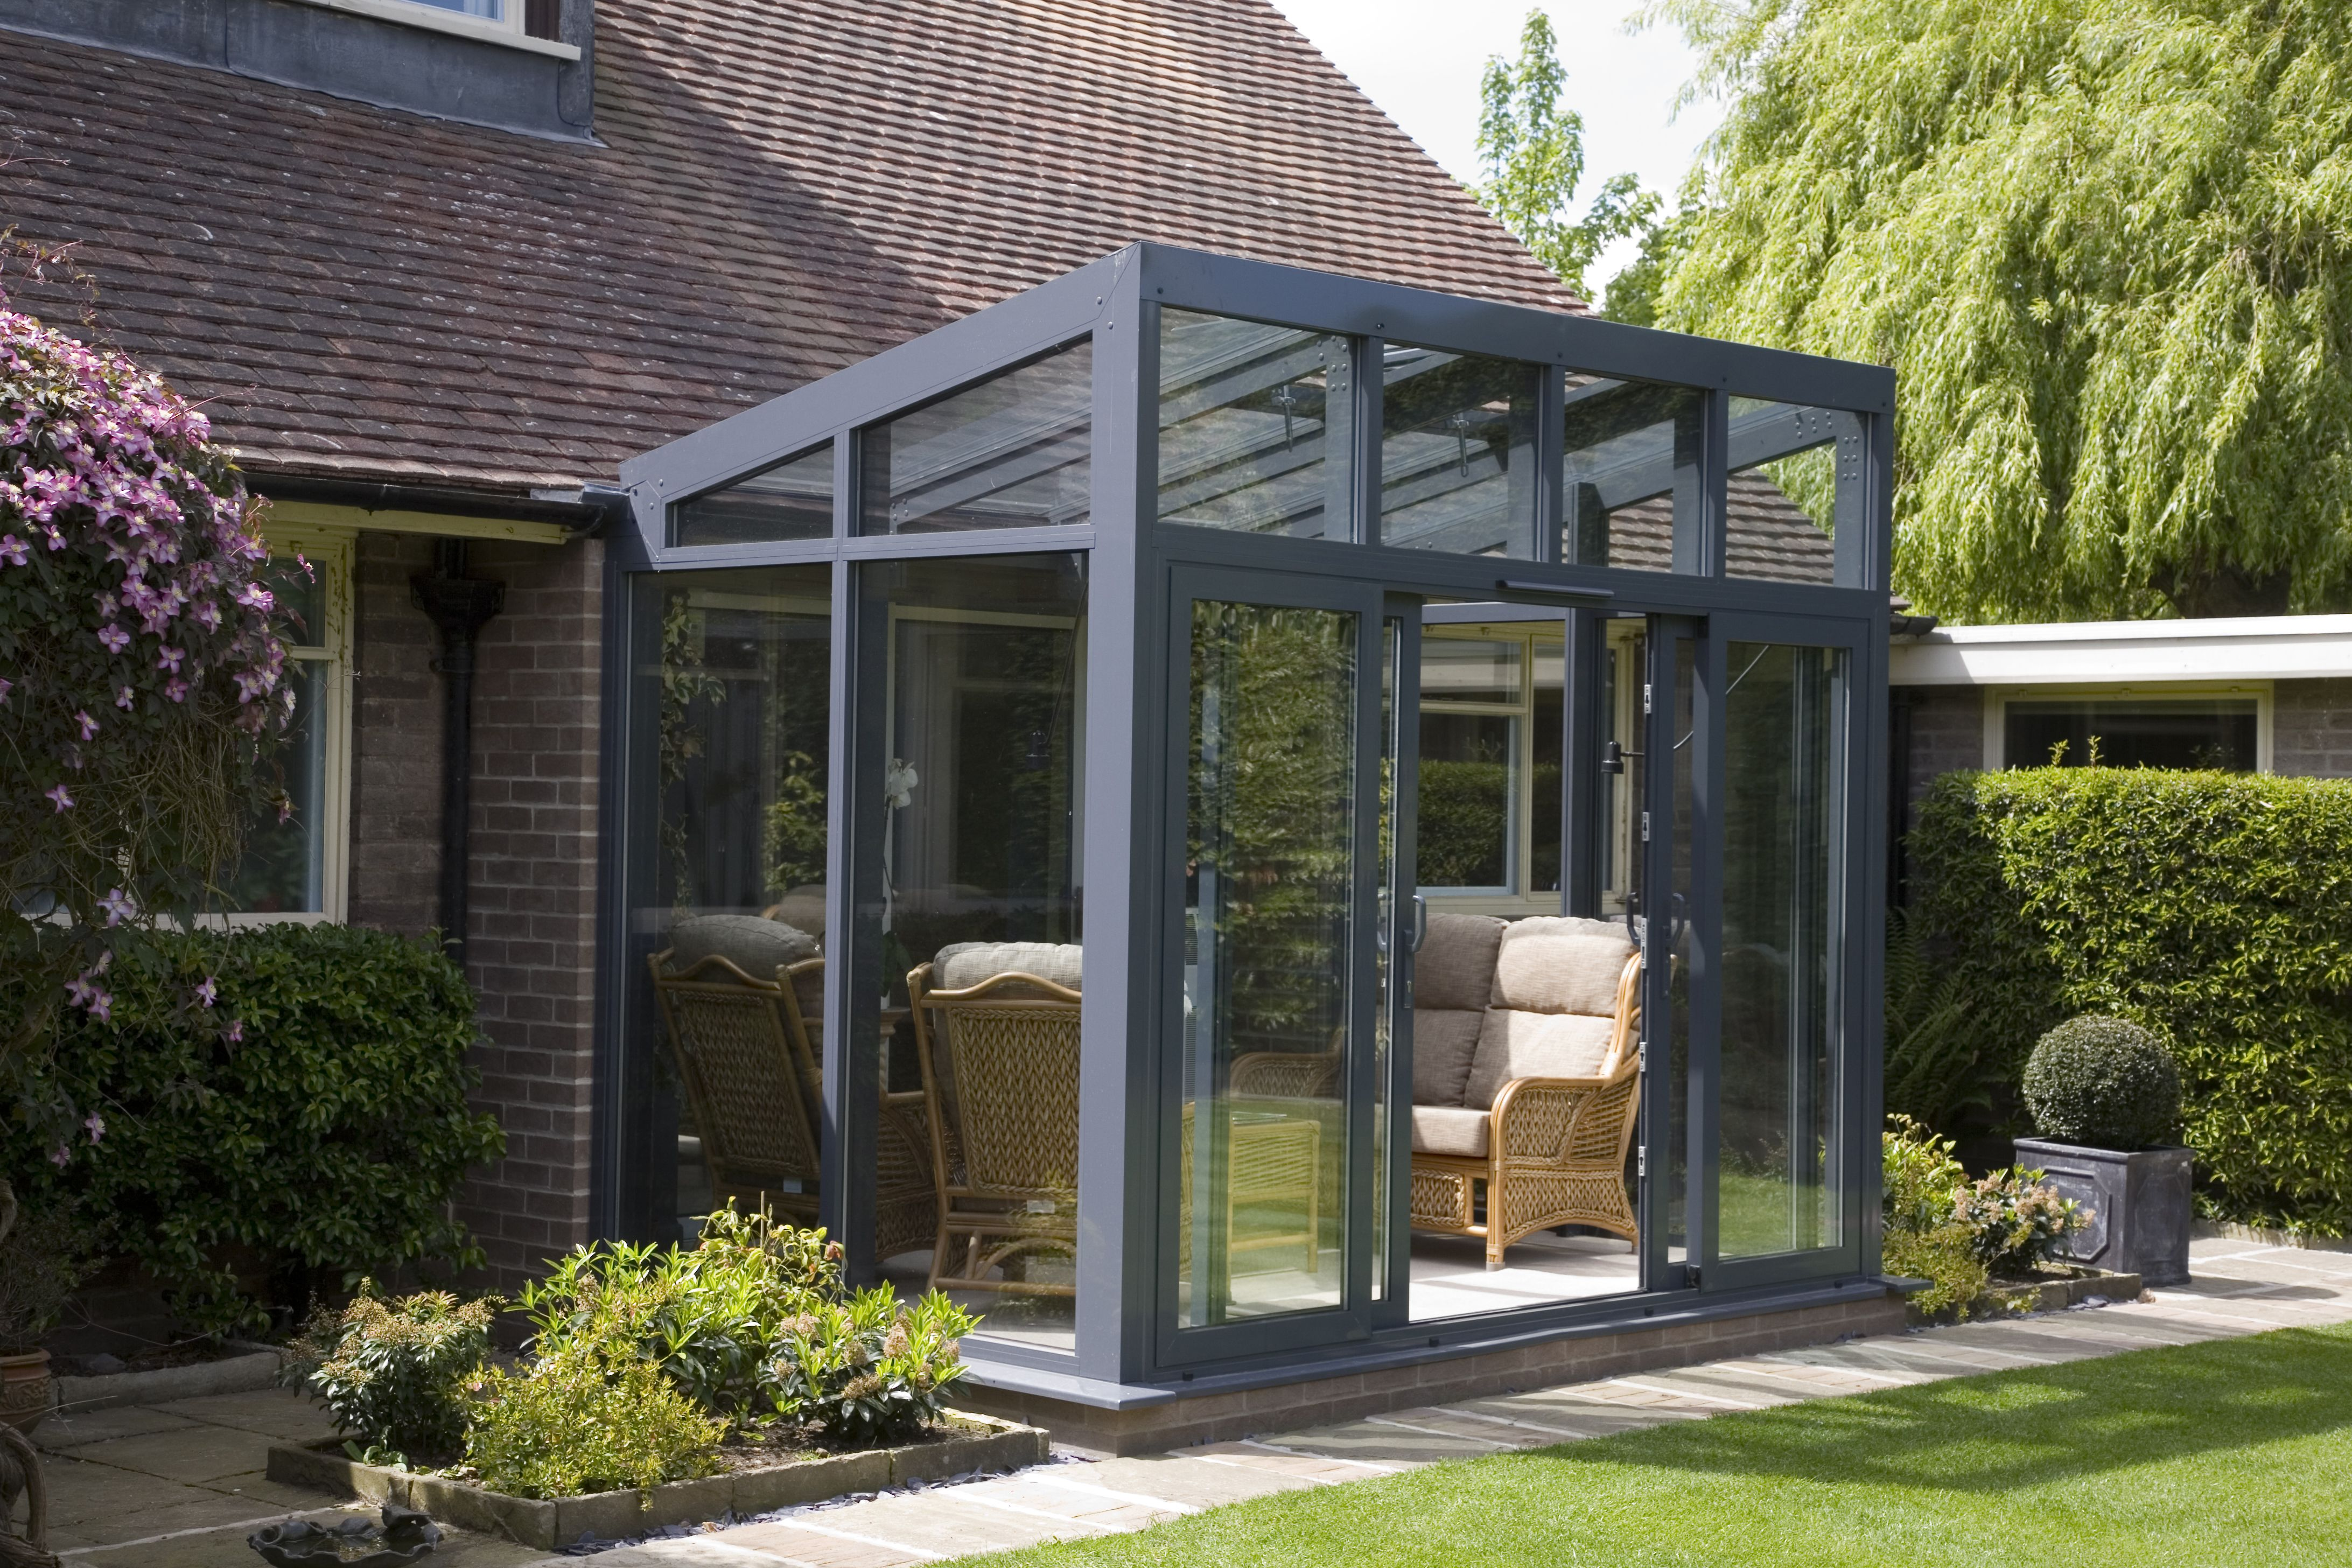 Conservatories concept windows and conservatories essex - Reverse Lean To Conservatory Google Search